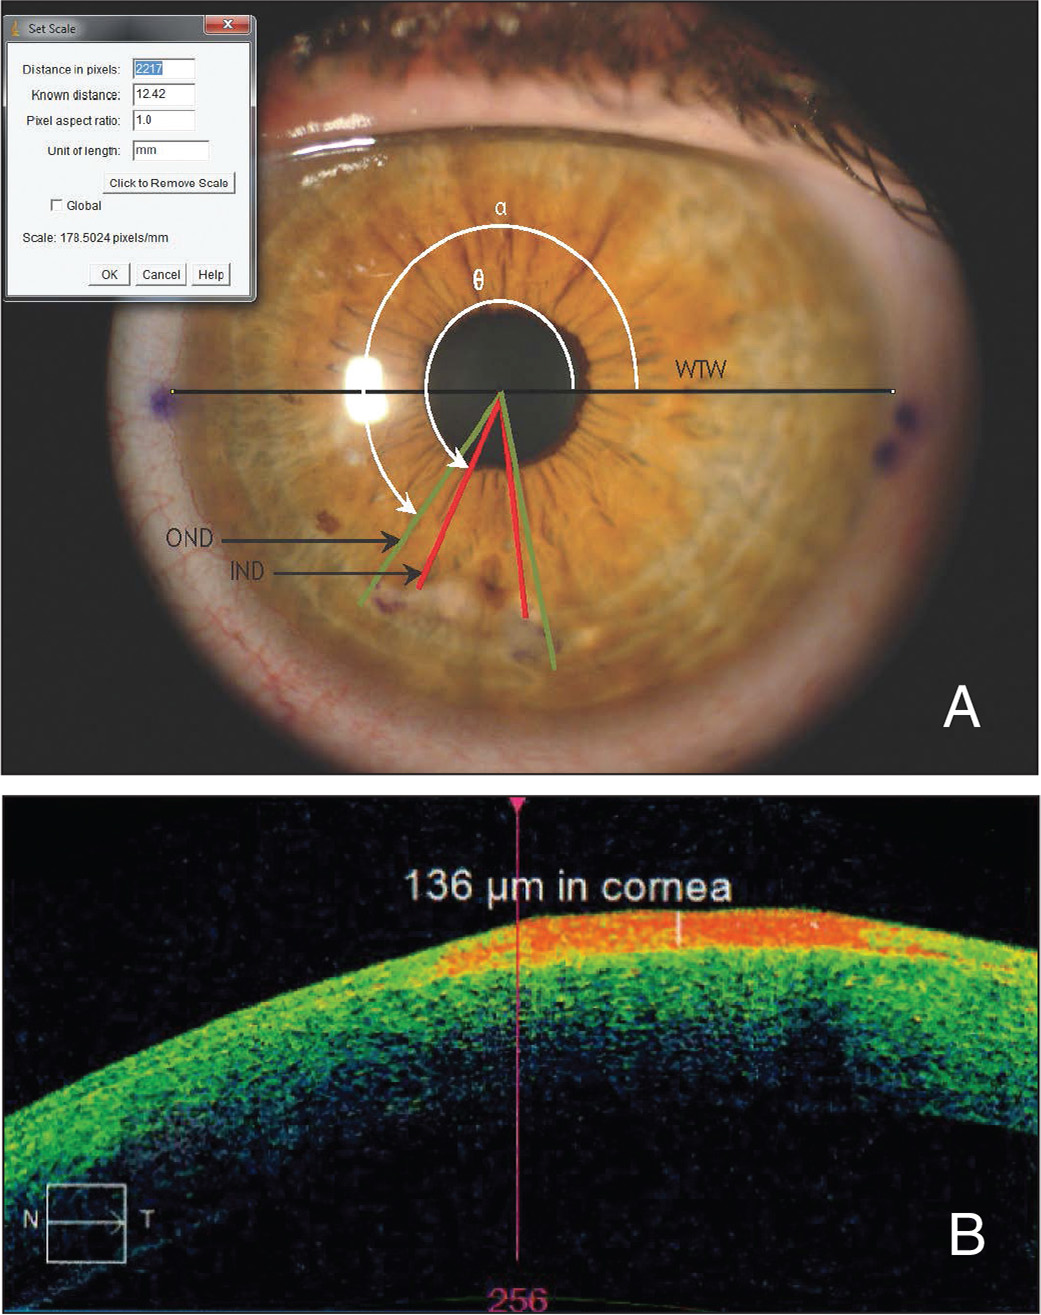 "(A) Slit-lamp photograph of the affected eye imported into ImageJ software. The horizontal black line corresponds to white-to-white (WTW) measurement, which has been derived from the Scheimpflug image and used in the ImageJ software to set the ""pixel aspect ratio."" The green and red lines correspond to the outer and inner diameters of the lesion, respectively, and their angles; the nasal angles alpha and theta represented above, were automatically calculated on the ImageJ software and referenced to the horizontal WTW measurement. (B) A section of the cube mode (4 × 4 mm) of Zeiss Cirrus optical coherence tomography (Carl Zeiss Meditec AG) of the affected cornea showing the Salzmann's nodular lesion. The maximum depth of the protruding lesion to the level of the unaffected Bowman's layer was measured. OND = outer nasal diameter; IND = inner nasal diameter; α = angle of OND from horizontal; Ø = angle of IND from horizontal"